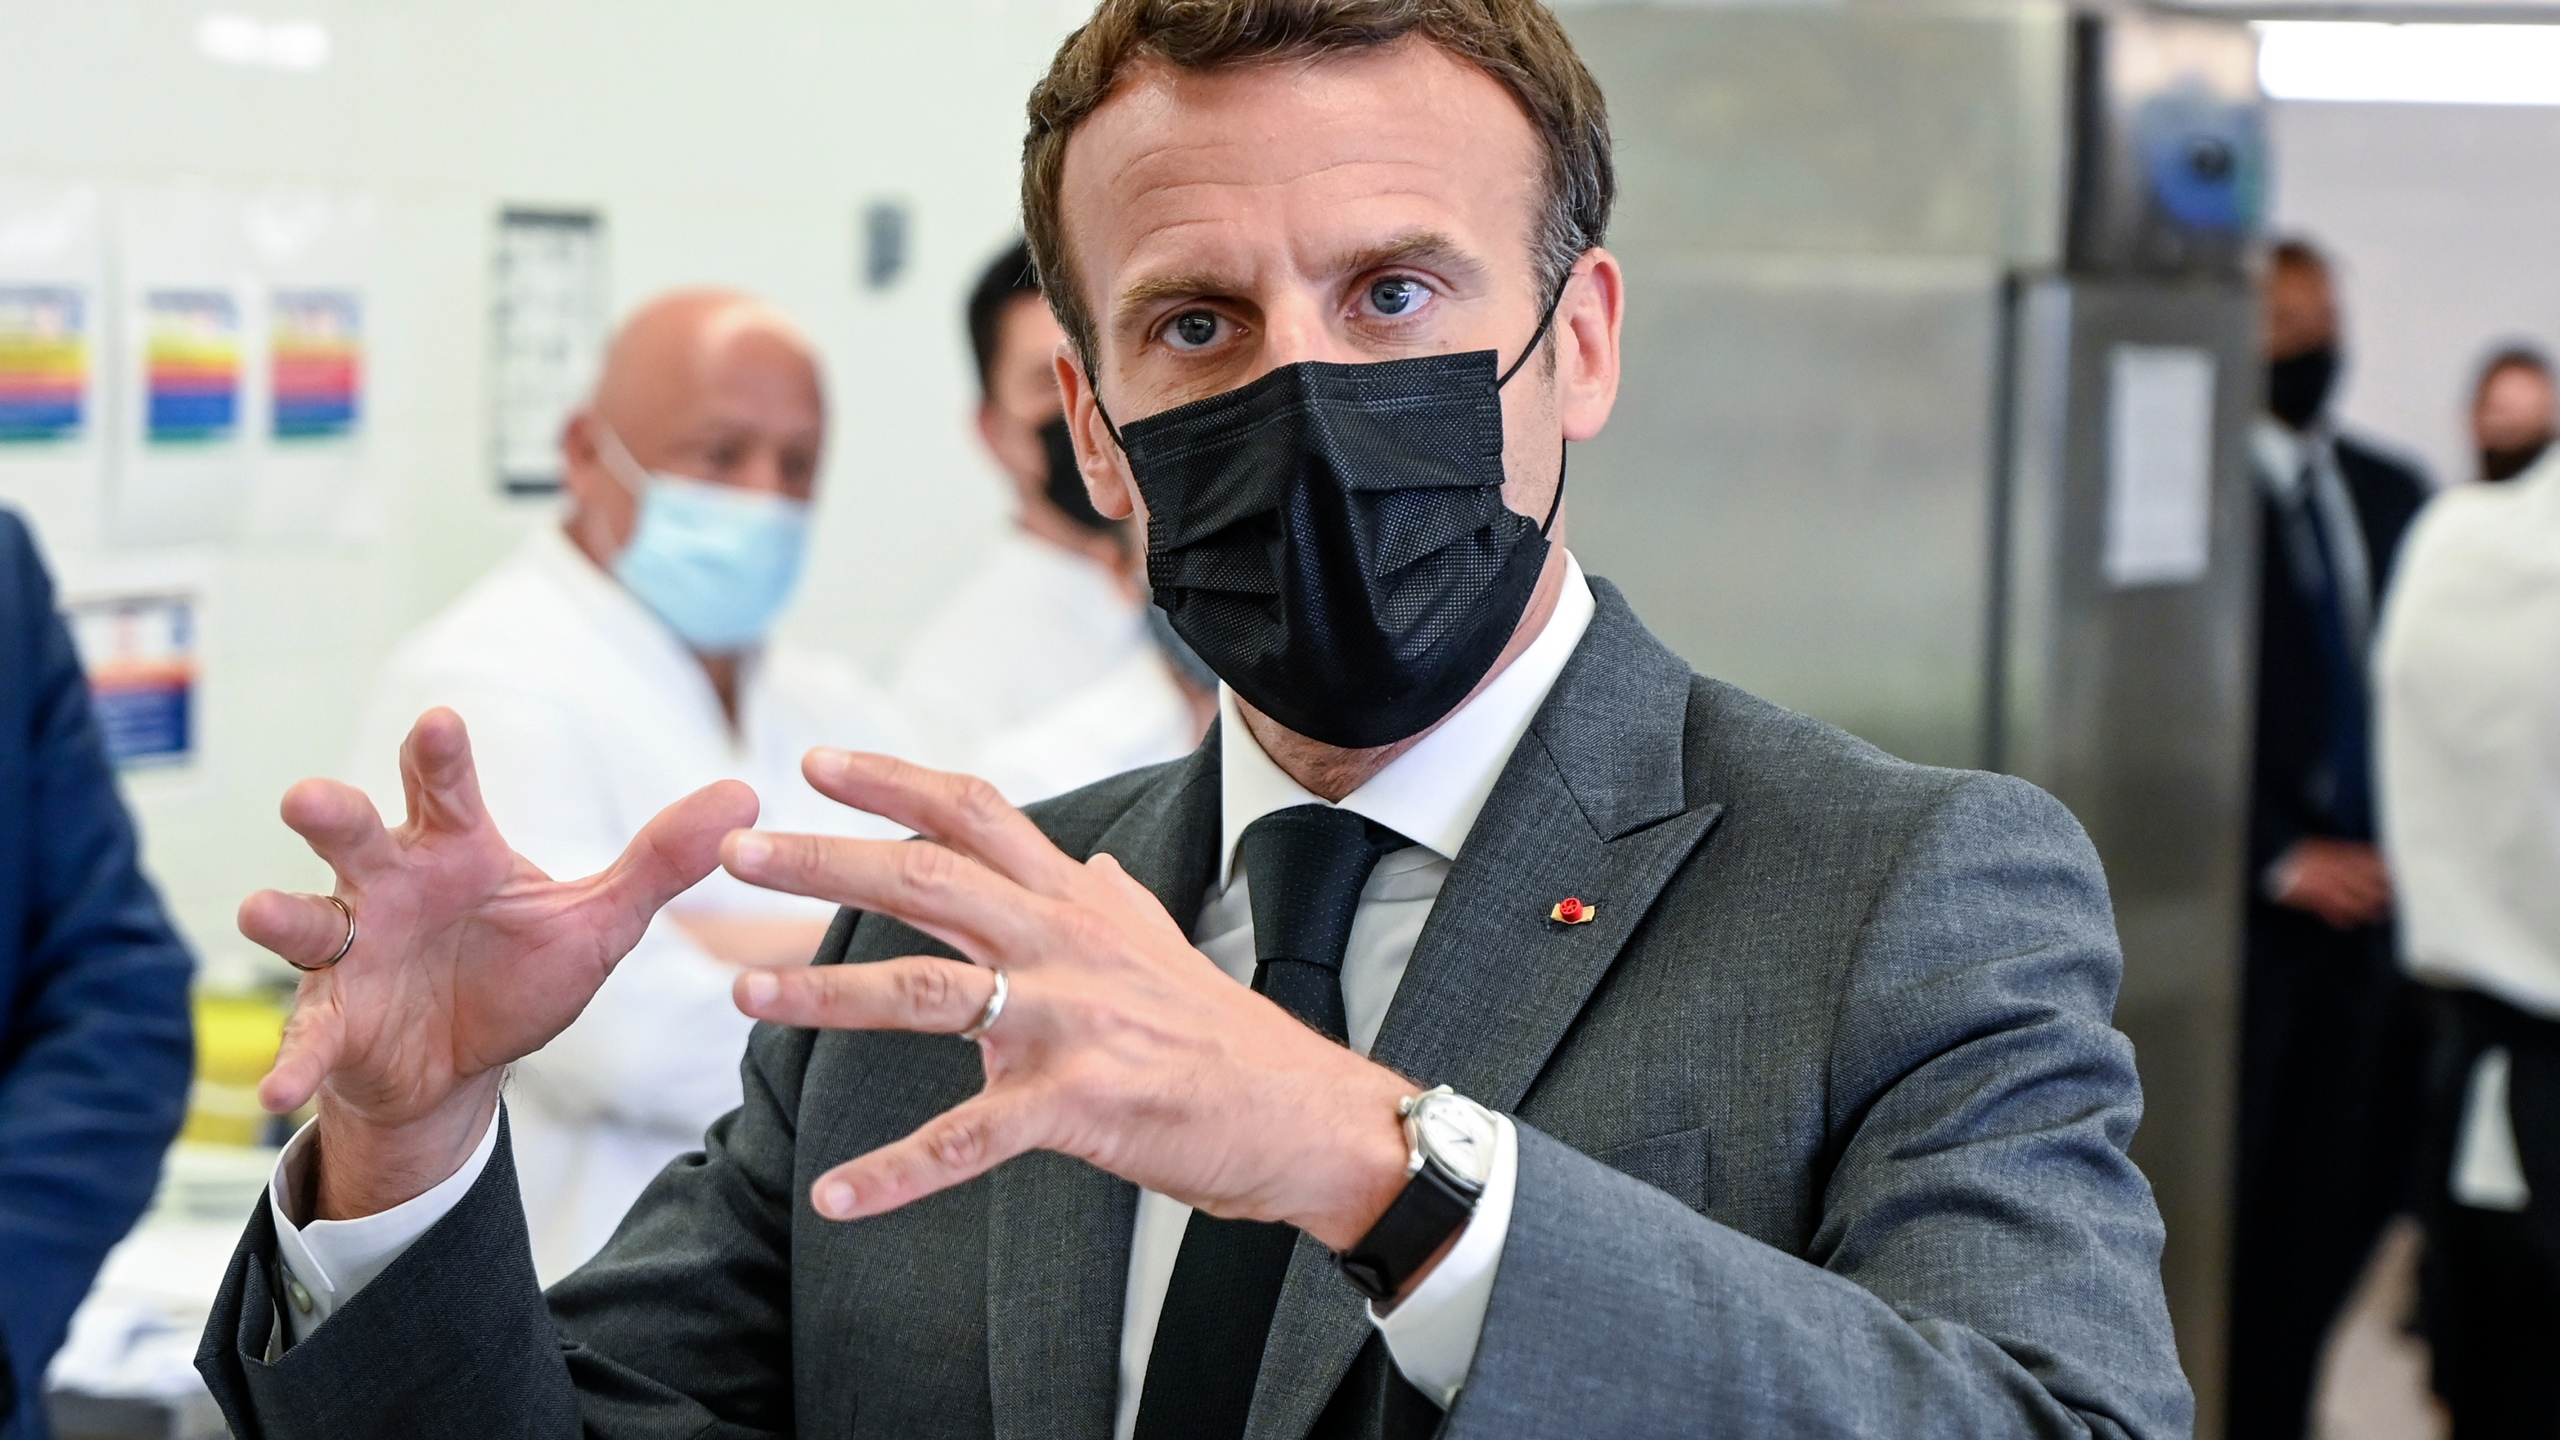 French President Emmanuel Macron talks to journalists Tuesday June 8, 2021 at the Hospitality school in Tain-l'Hermitage, southeastern France. French President Emmanuel Macron has been slapped in the face by a man during a visit in a small town of southeastern France, Macron's office confirmed. (Philippe Desmazes, Pool via AP)